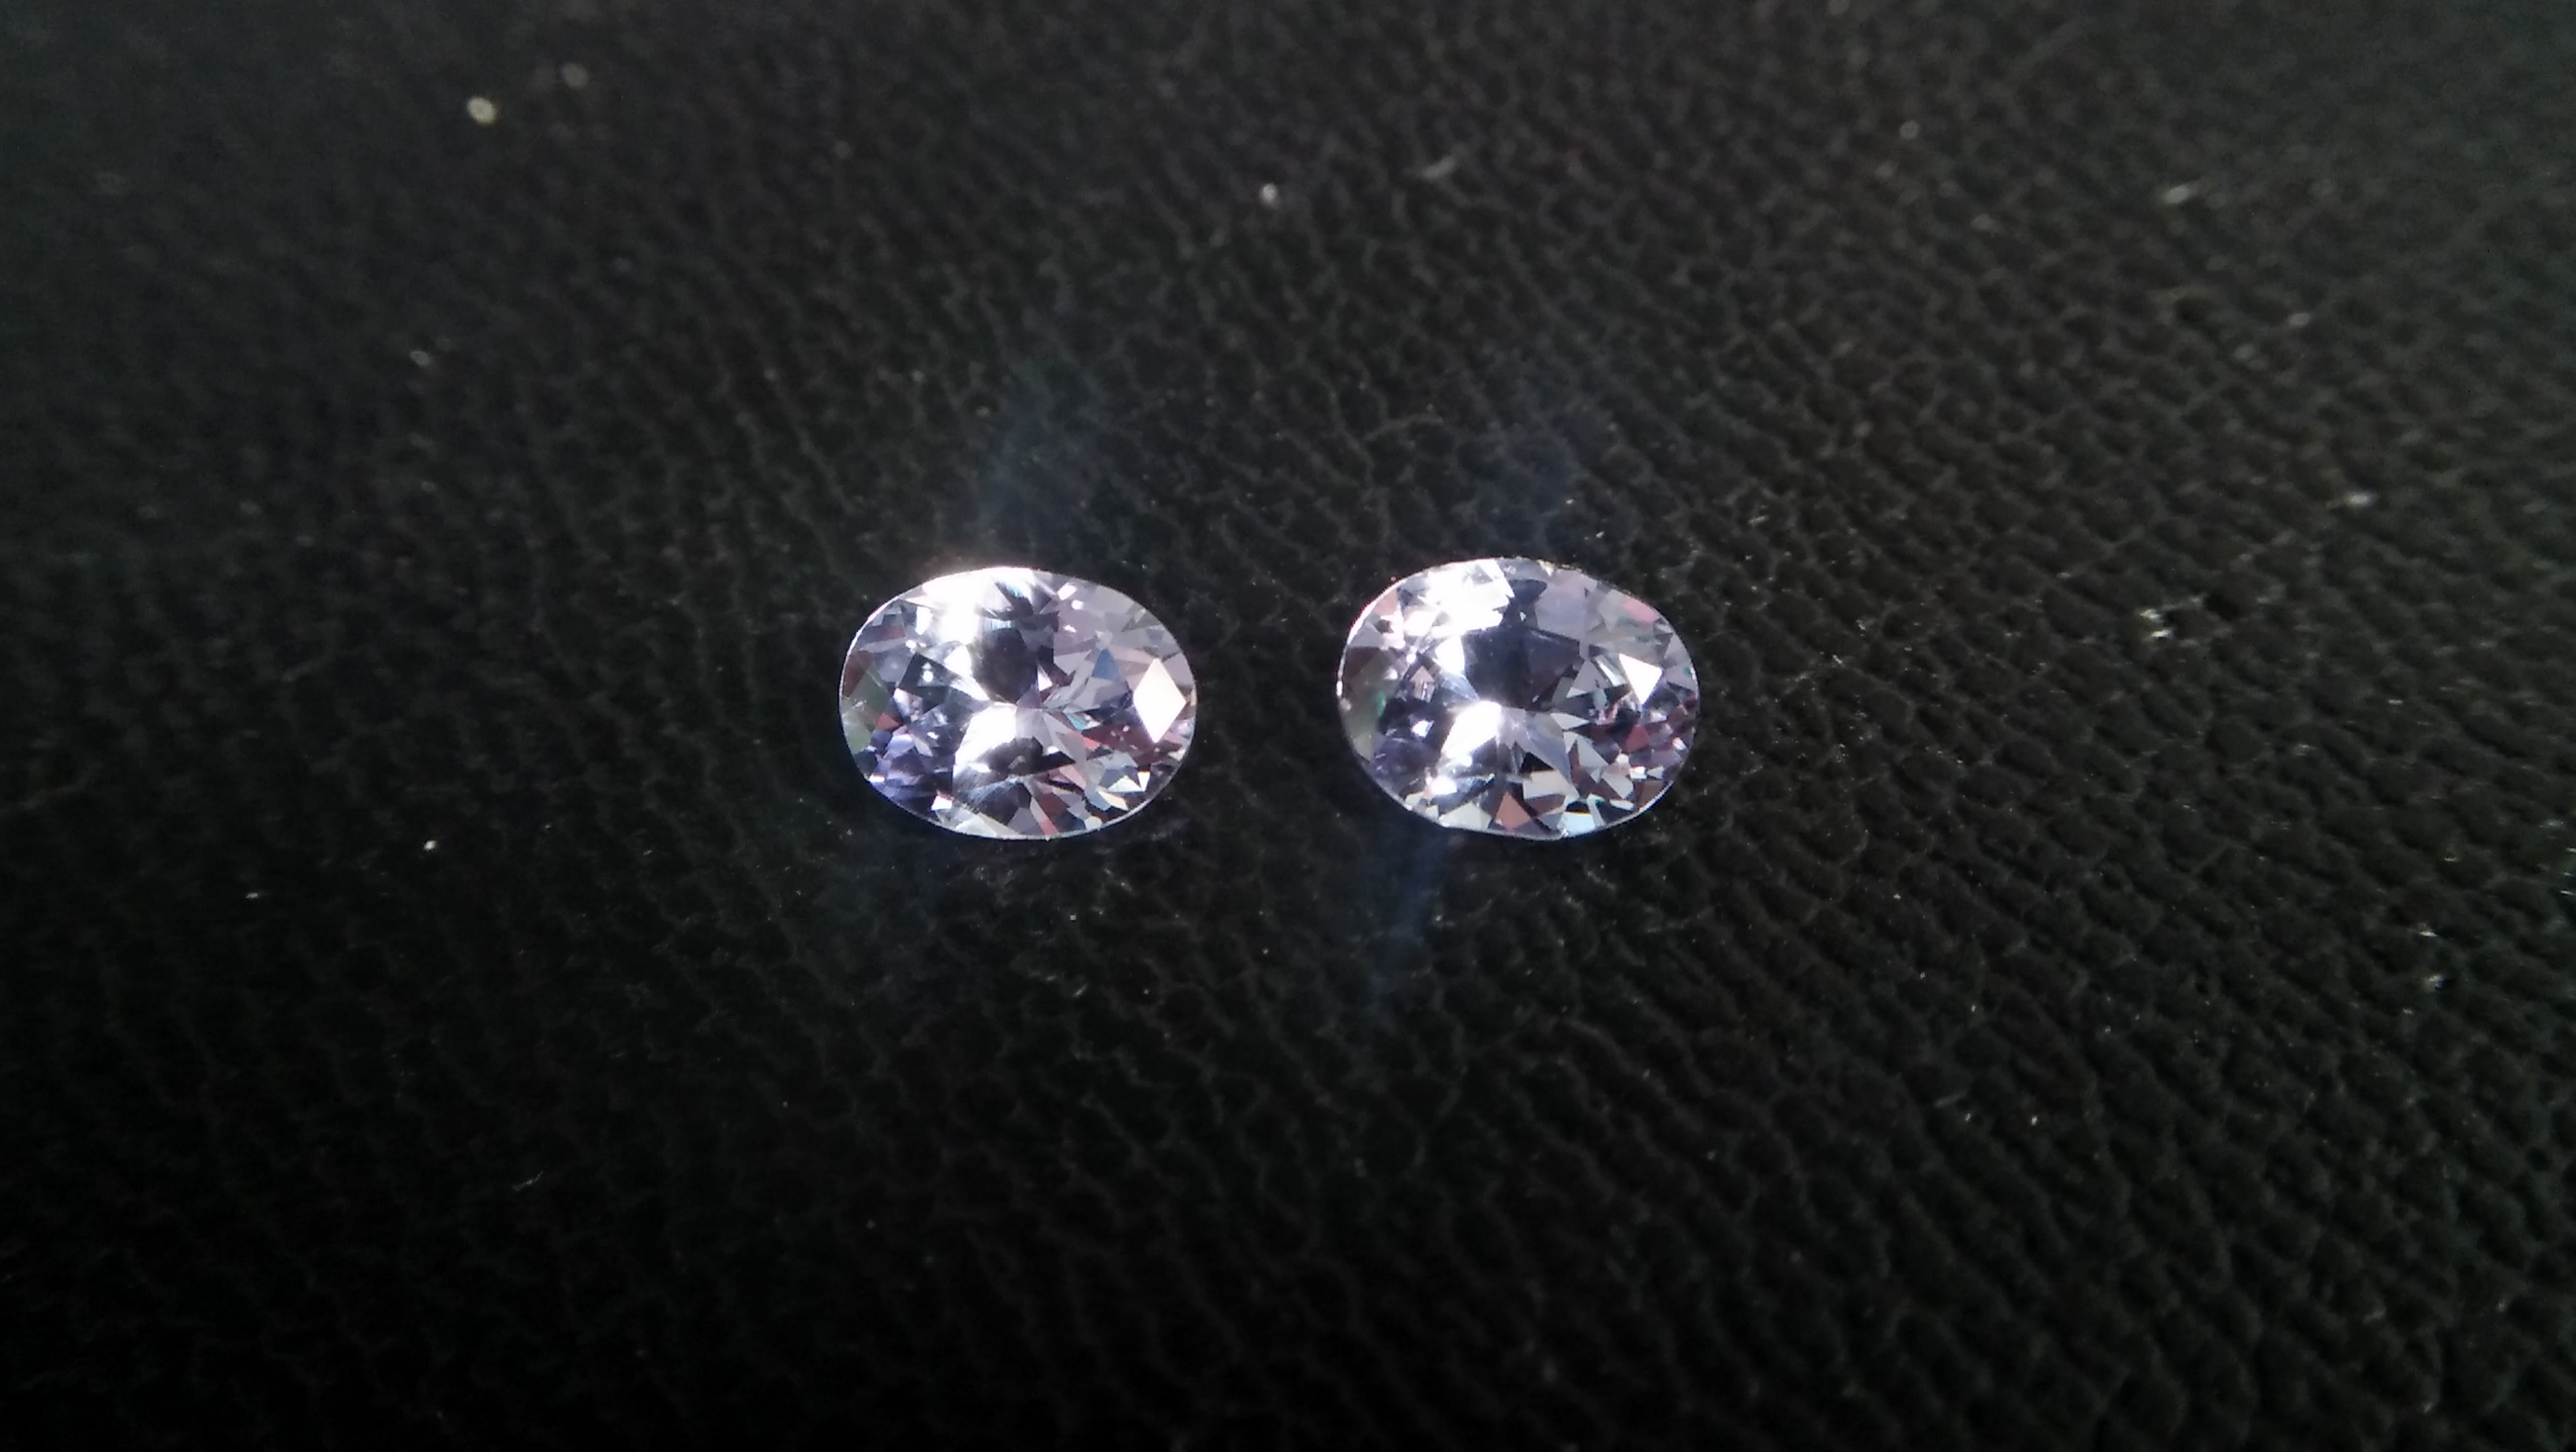 NATURAL Lavender Spinel Pair Shape : Ovel Clarity : SI Treatment : Natural/Unheated Dimension : 6.5mm x 5mm x 3mm ( Both Same) Weight : 1.45Cts (Both) Cut : Flower Cut Dispersion : Good Colour : Light Lavender